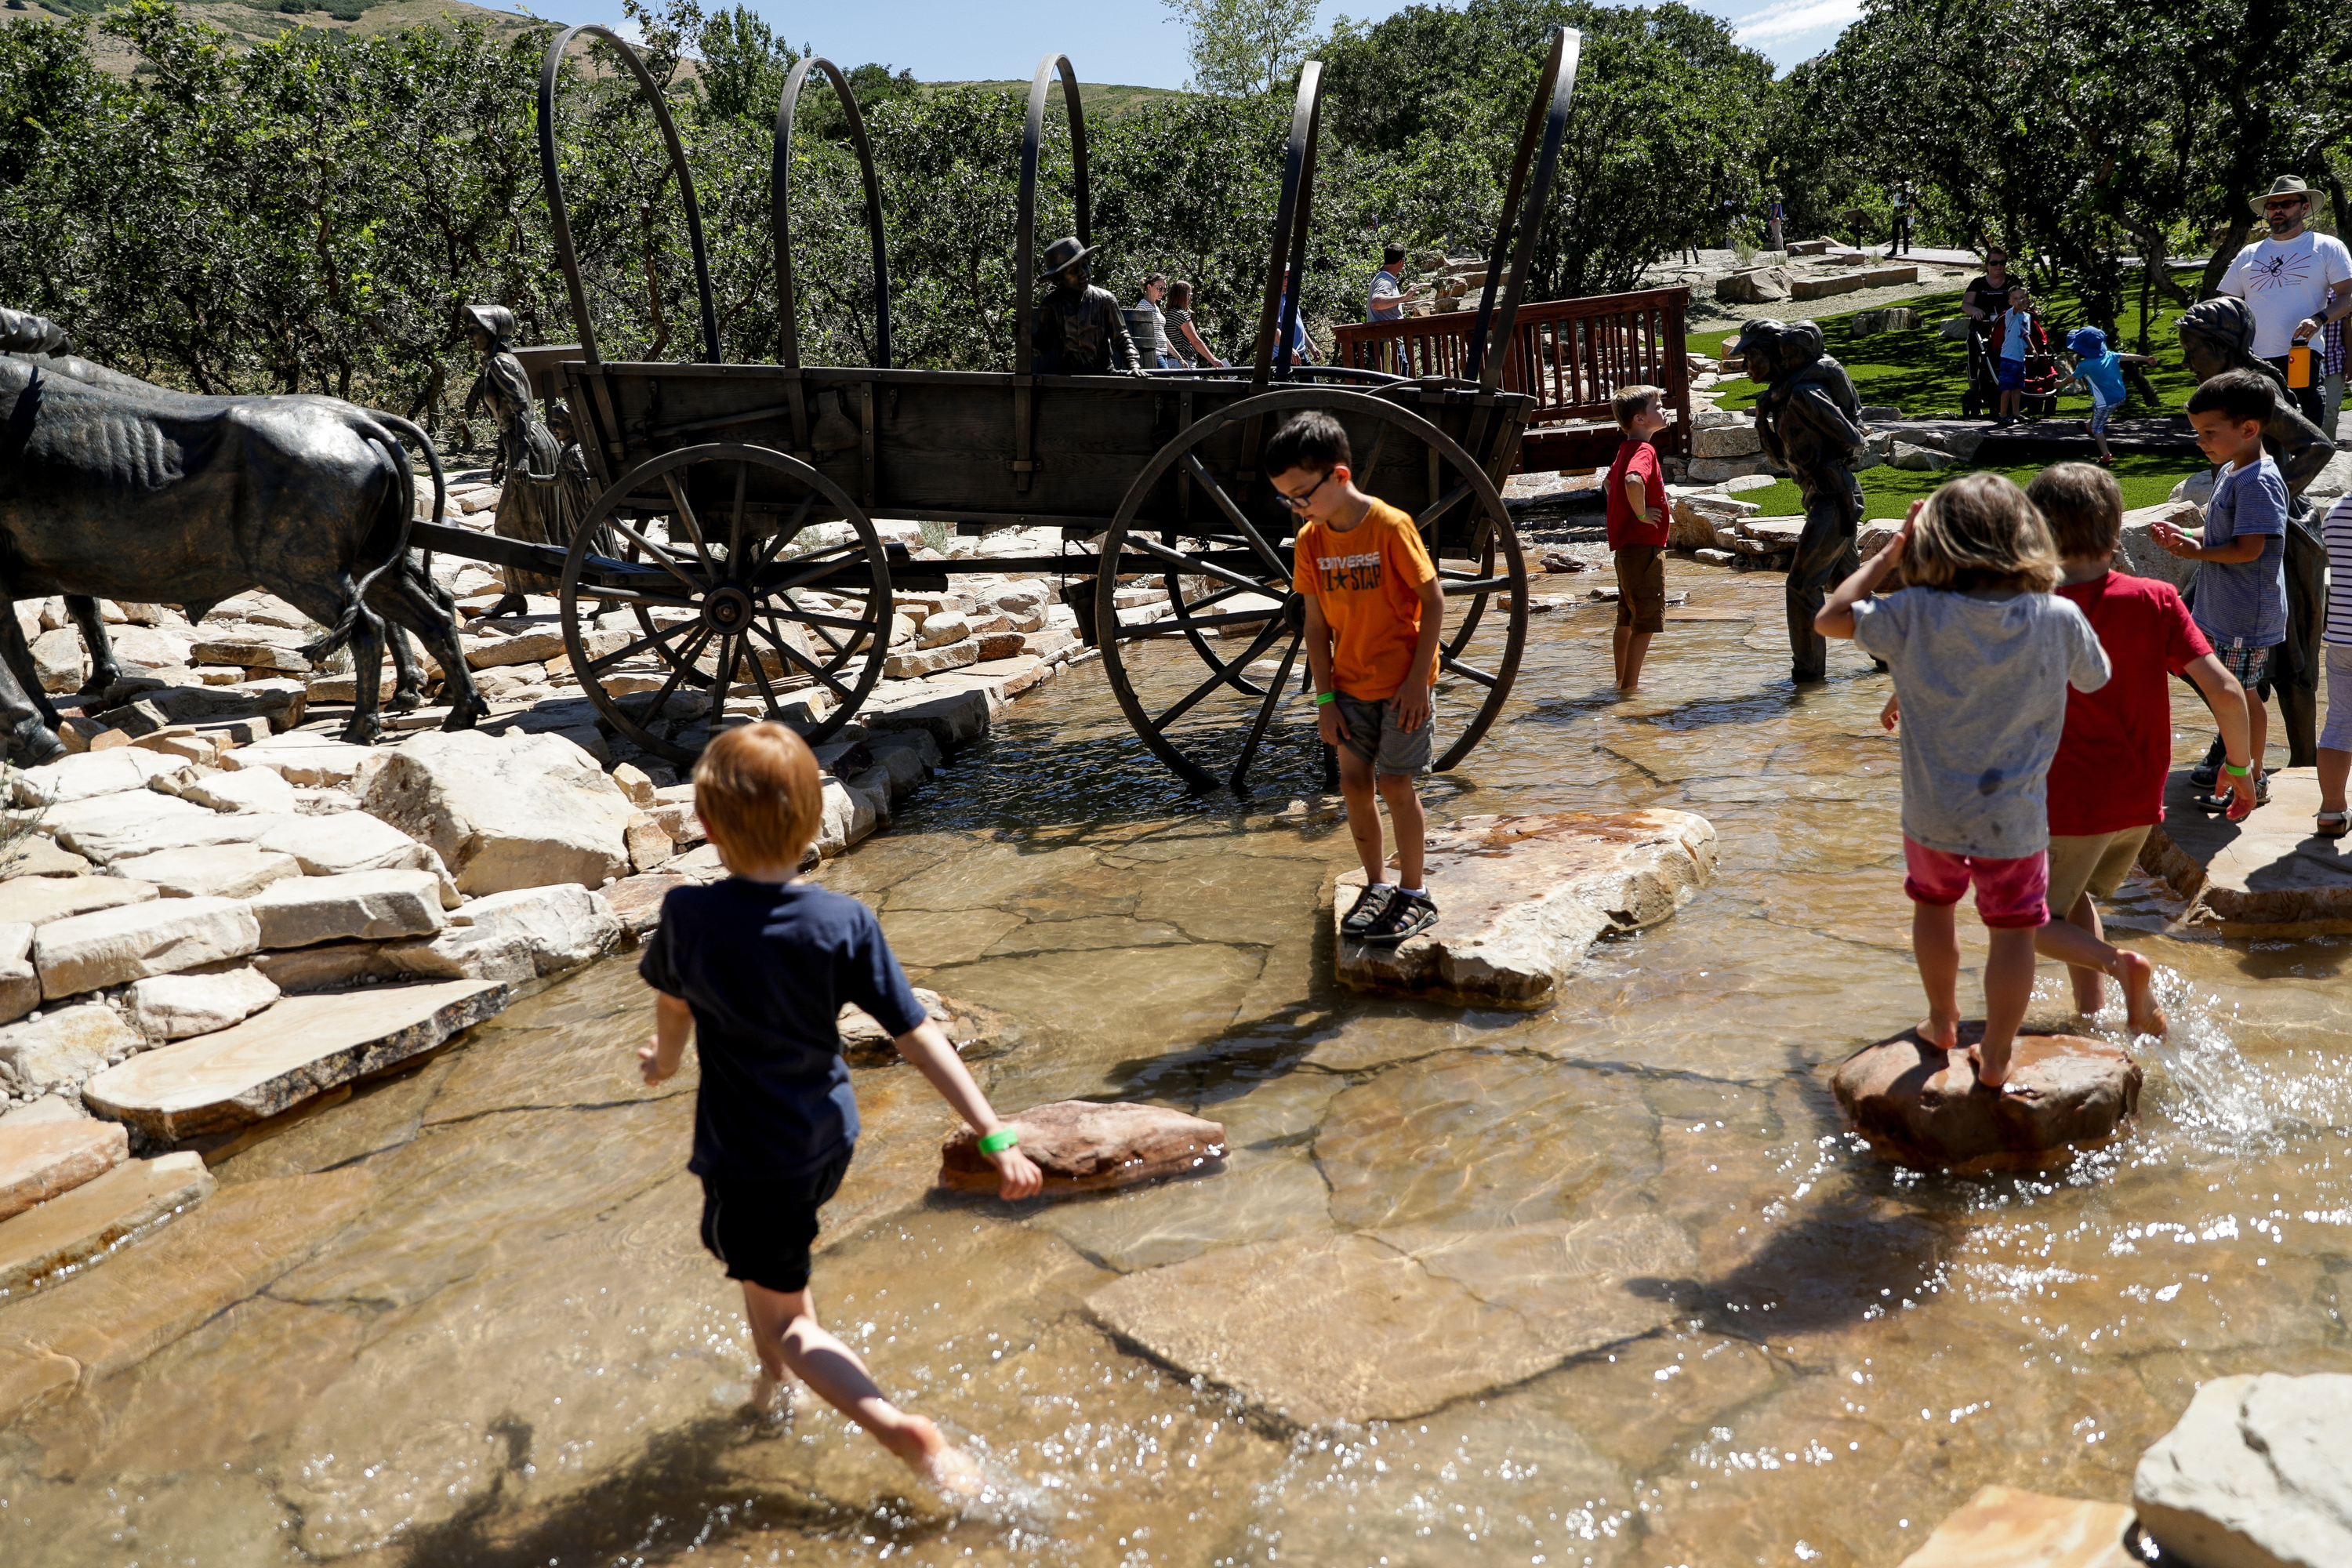 Children play in a steam at the Children's Pioneer Memorial at This Is the Place Heritage Park in Salt Lake City on the day of the memorial's dedication, Saturday, July 20, 2019.